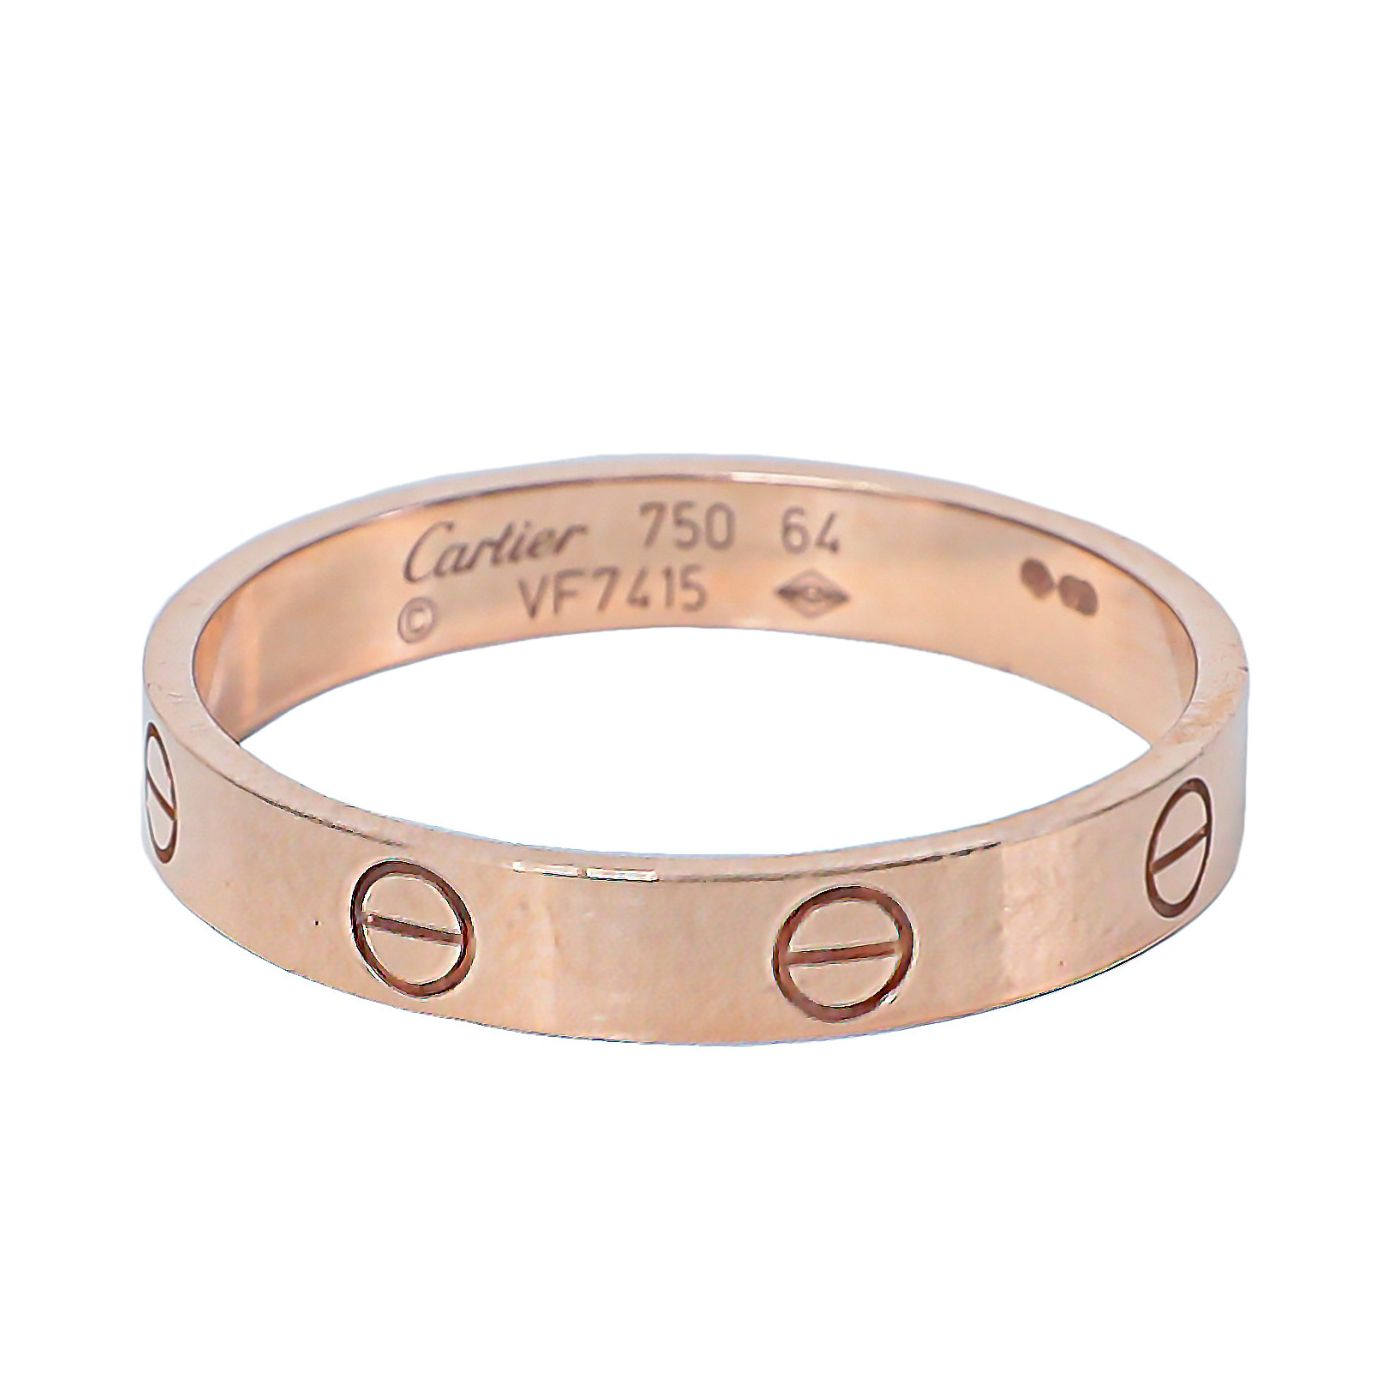 Cartier 18k Pink Gold Love Band Ring 64